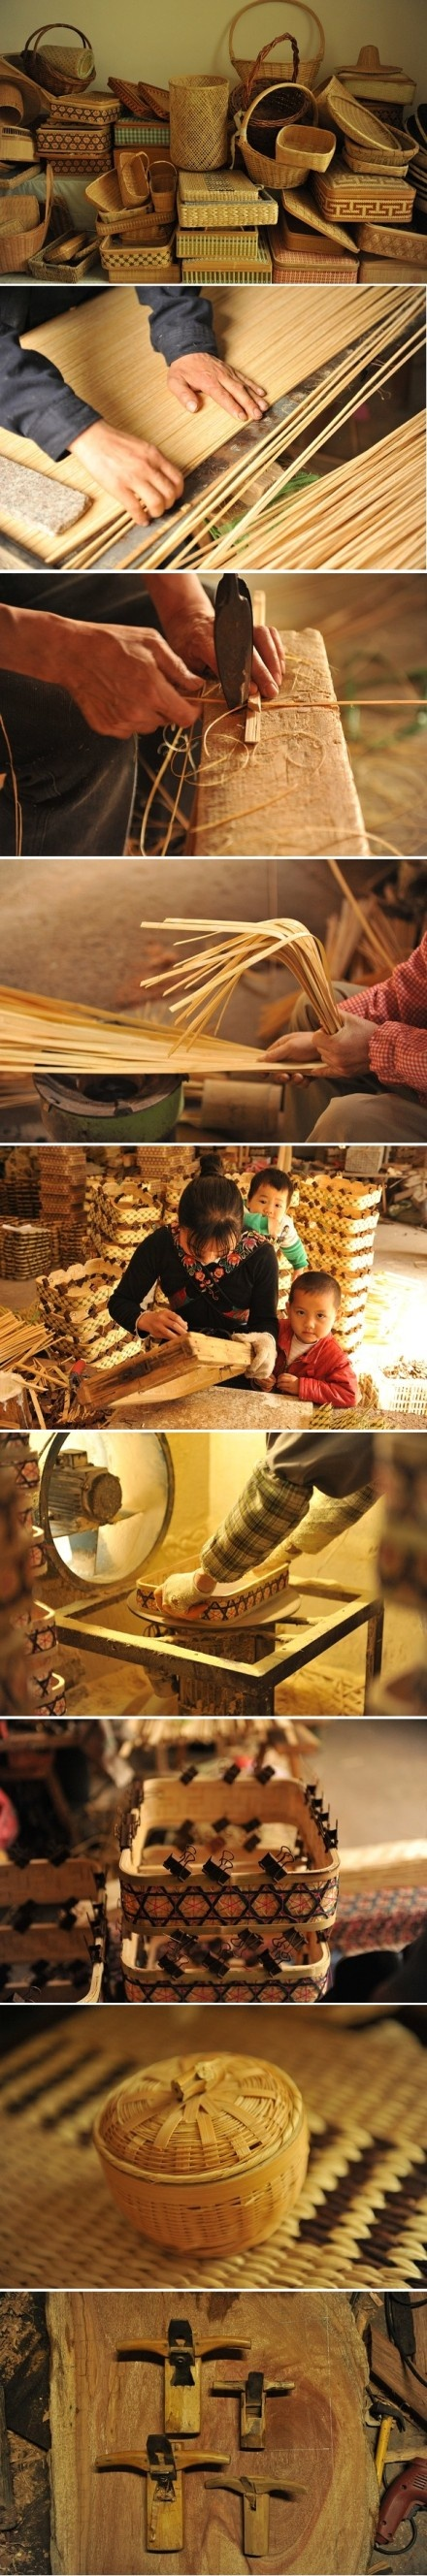 Gathering Basket Making Materials : Best images about tools and equipment for weaving on